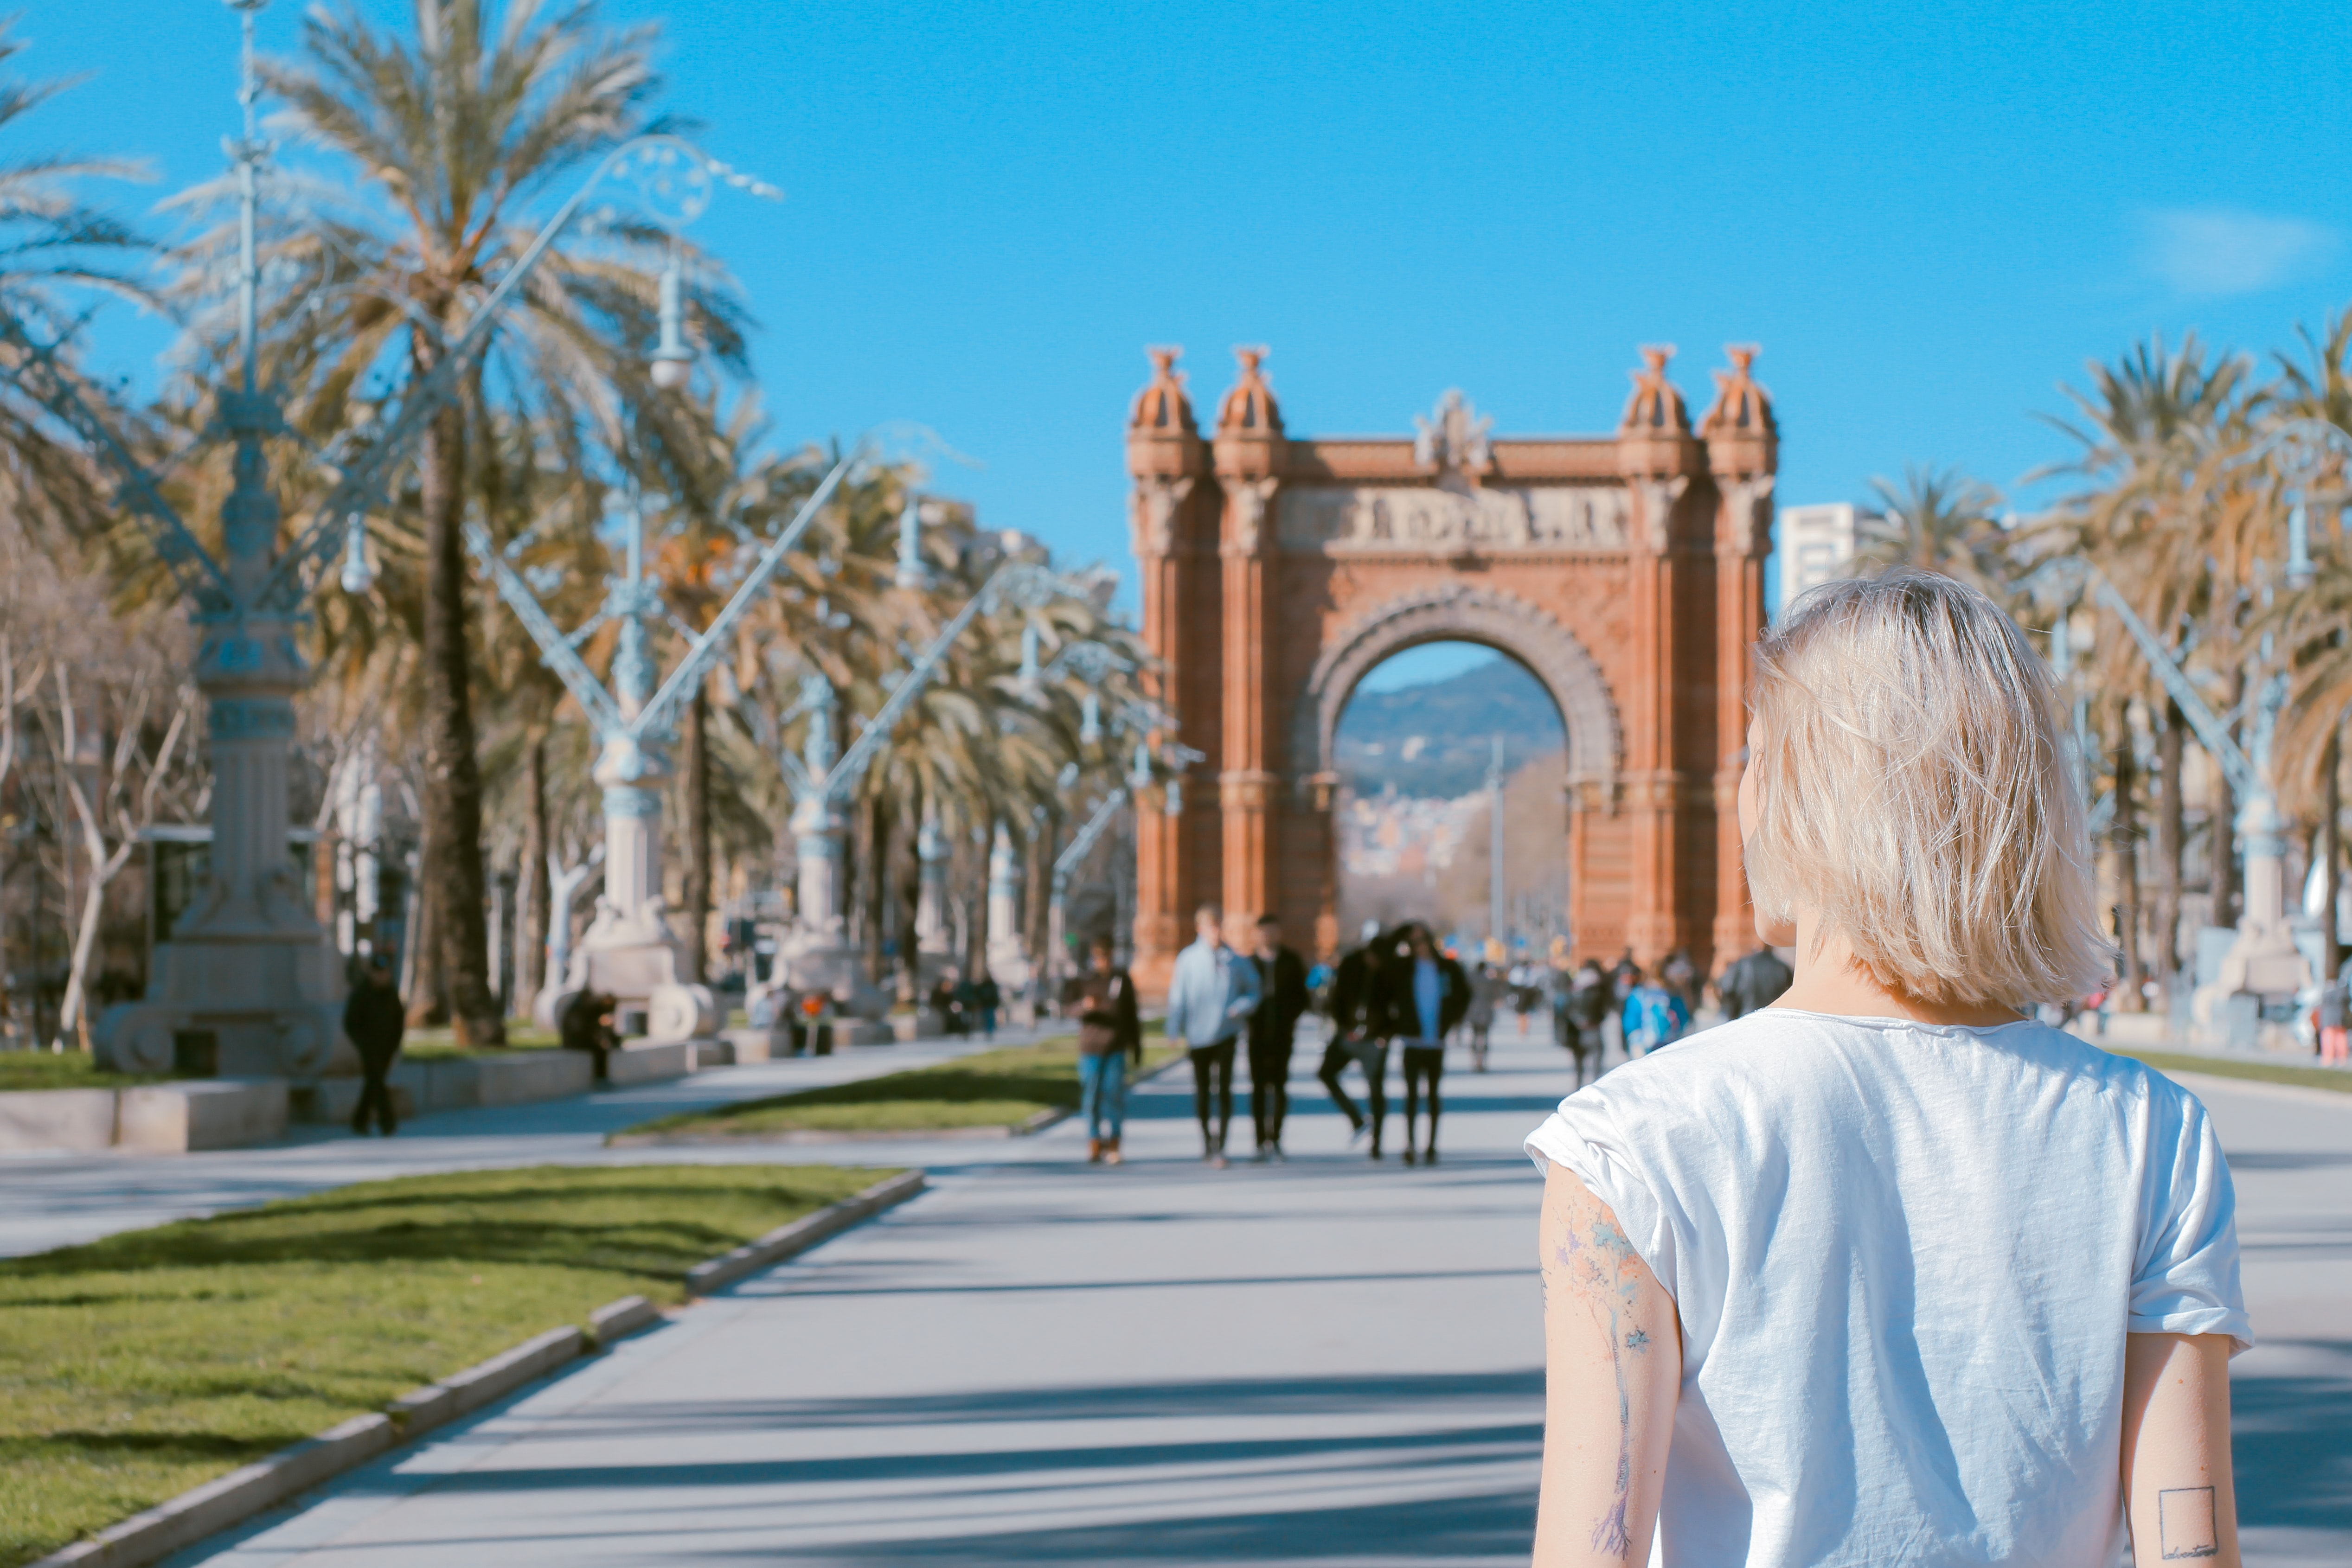 Rear view of a blonde woman walking on a road under a triumphal arch in Barcelona